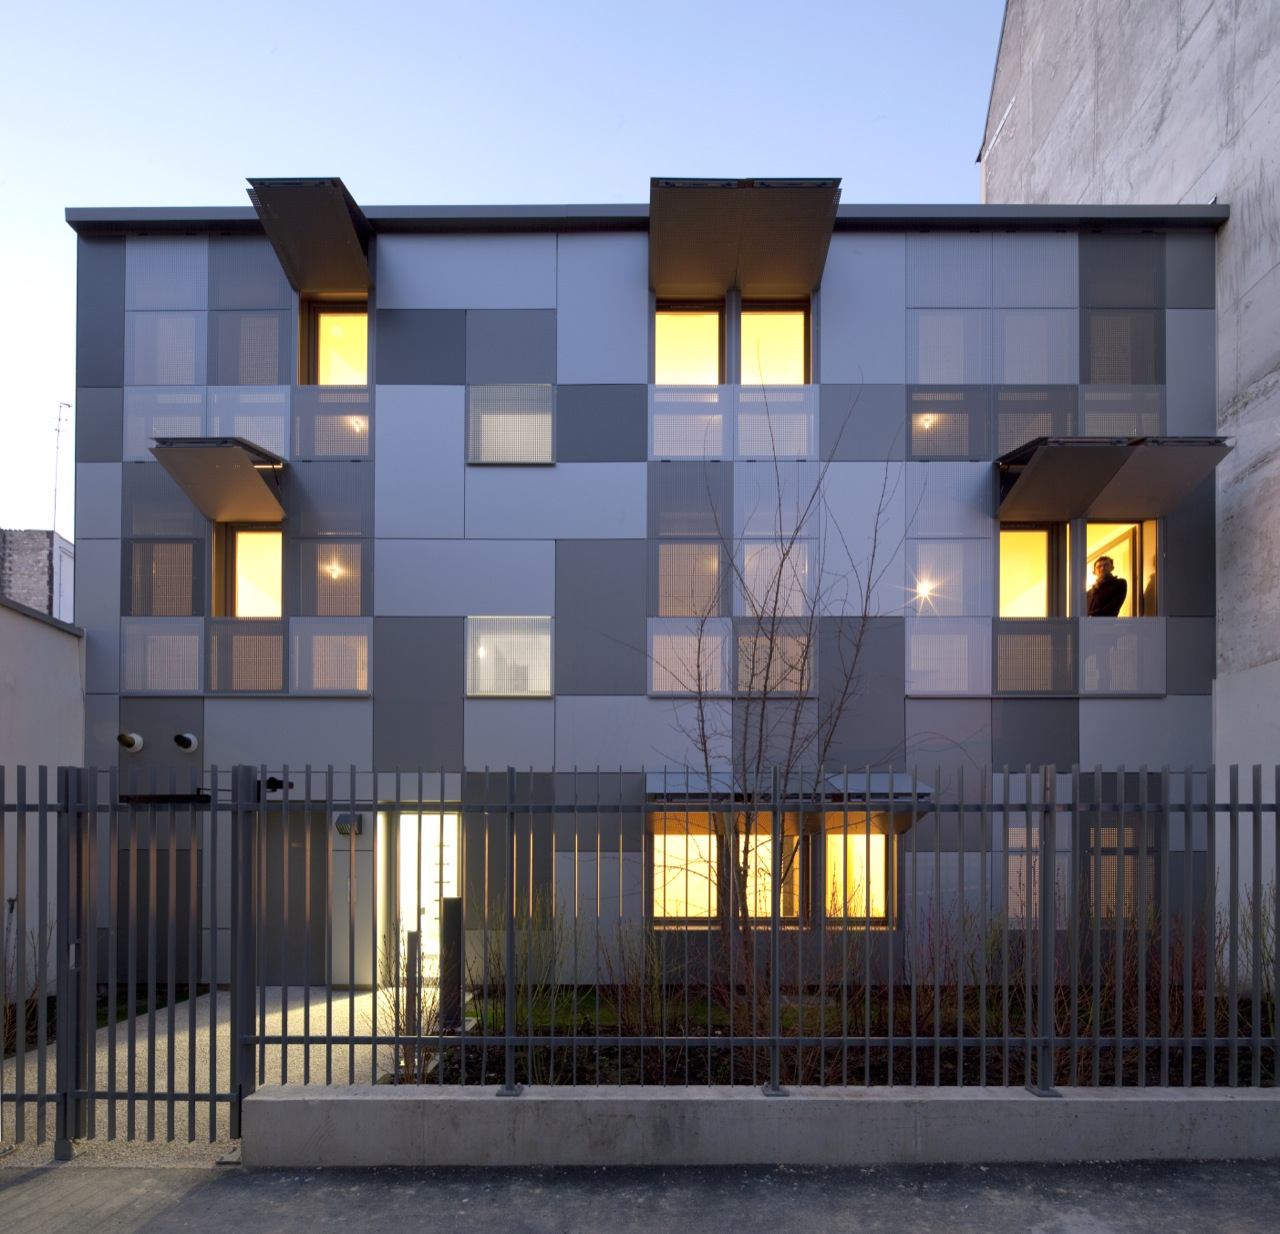 10 Logements Paris / RMDM Architects, Cortesia de RMDM Architectes